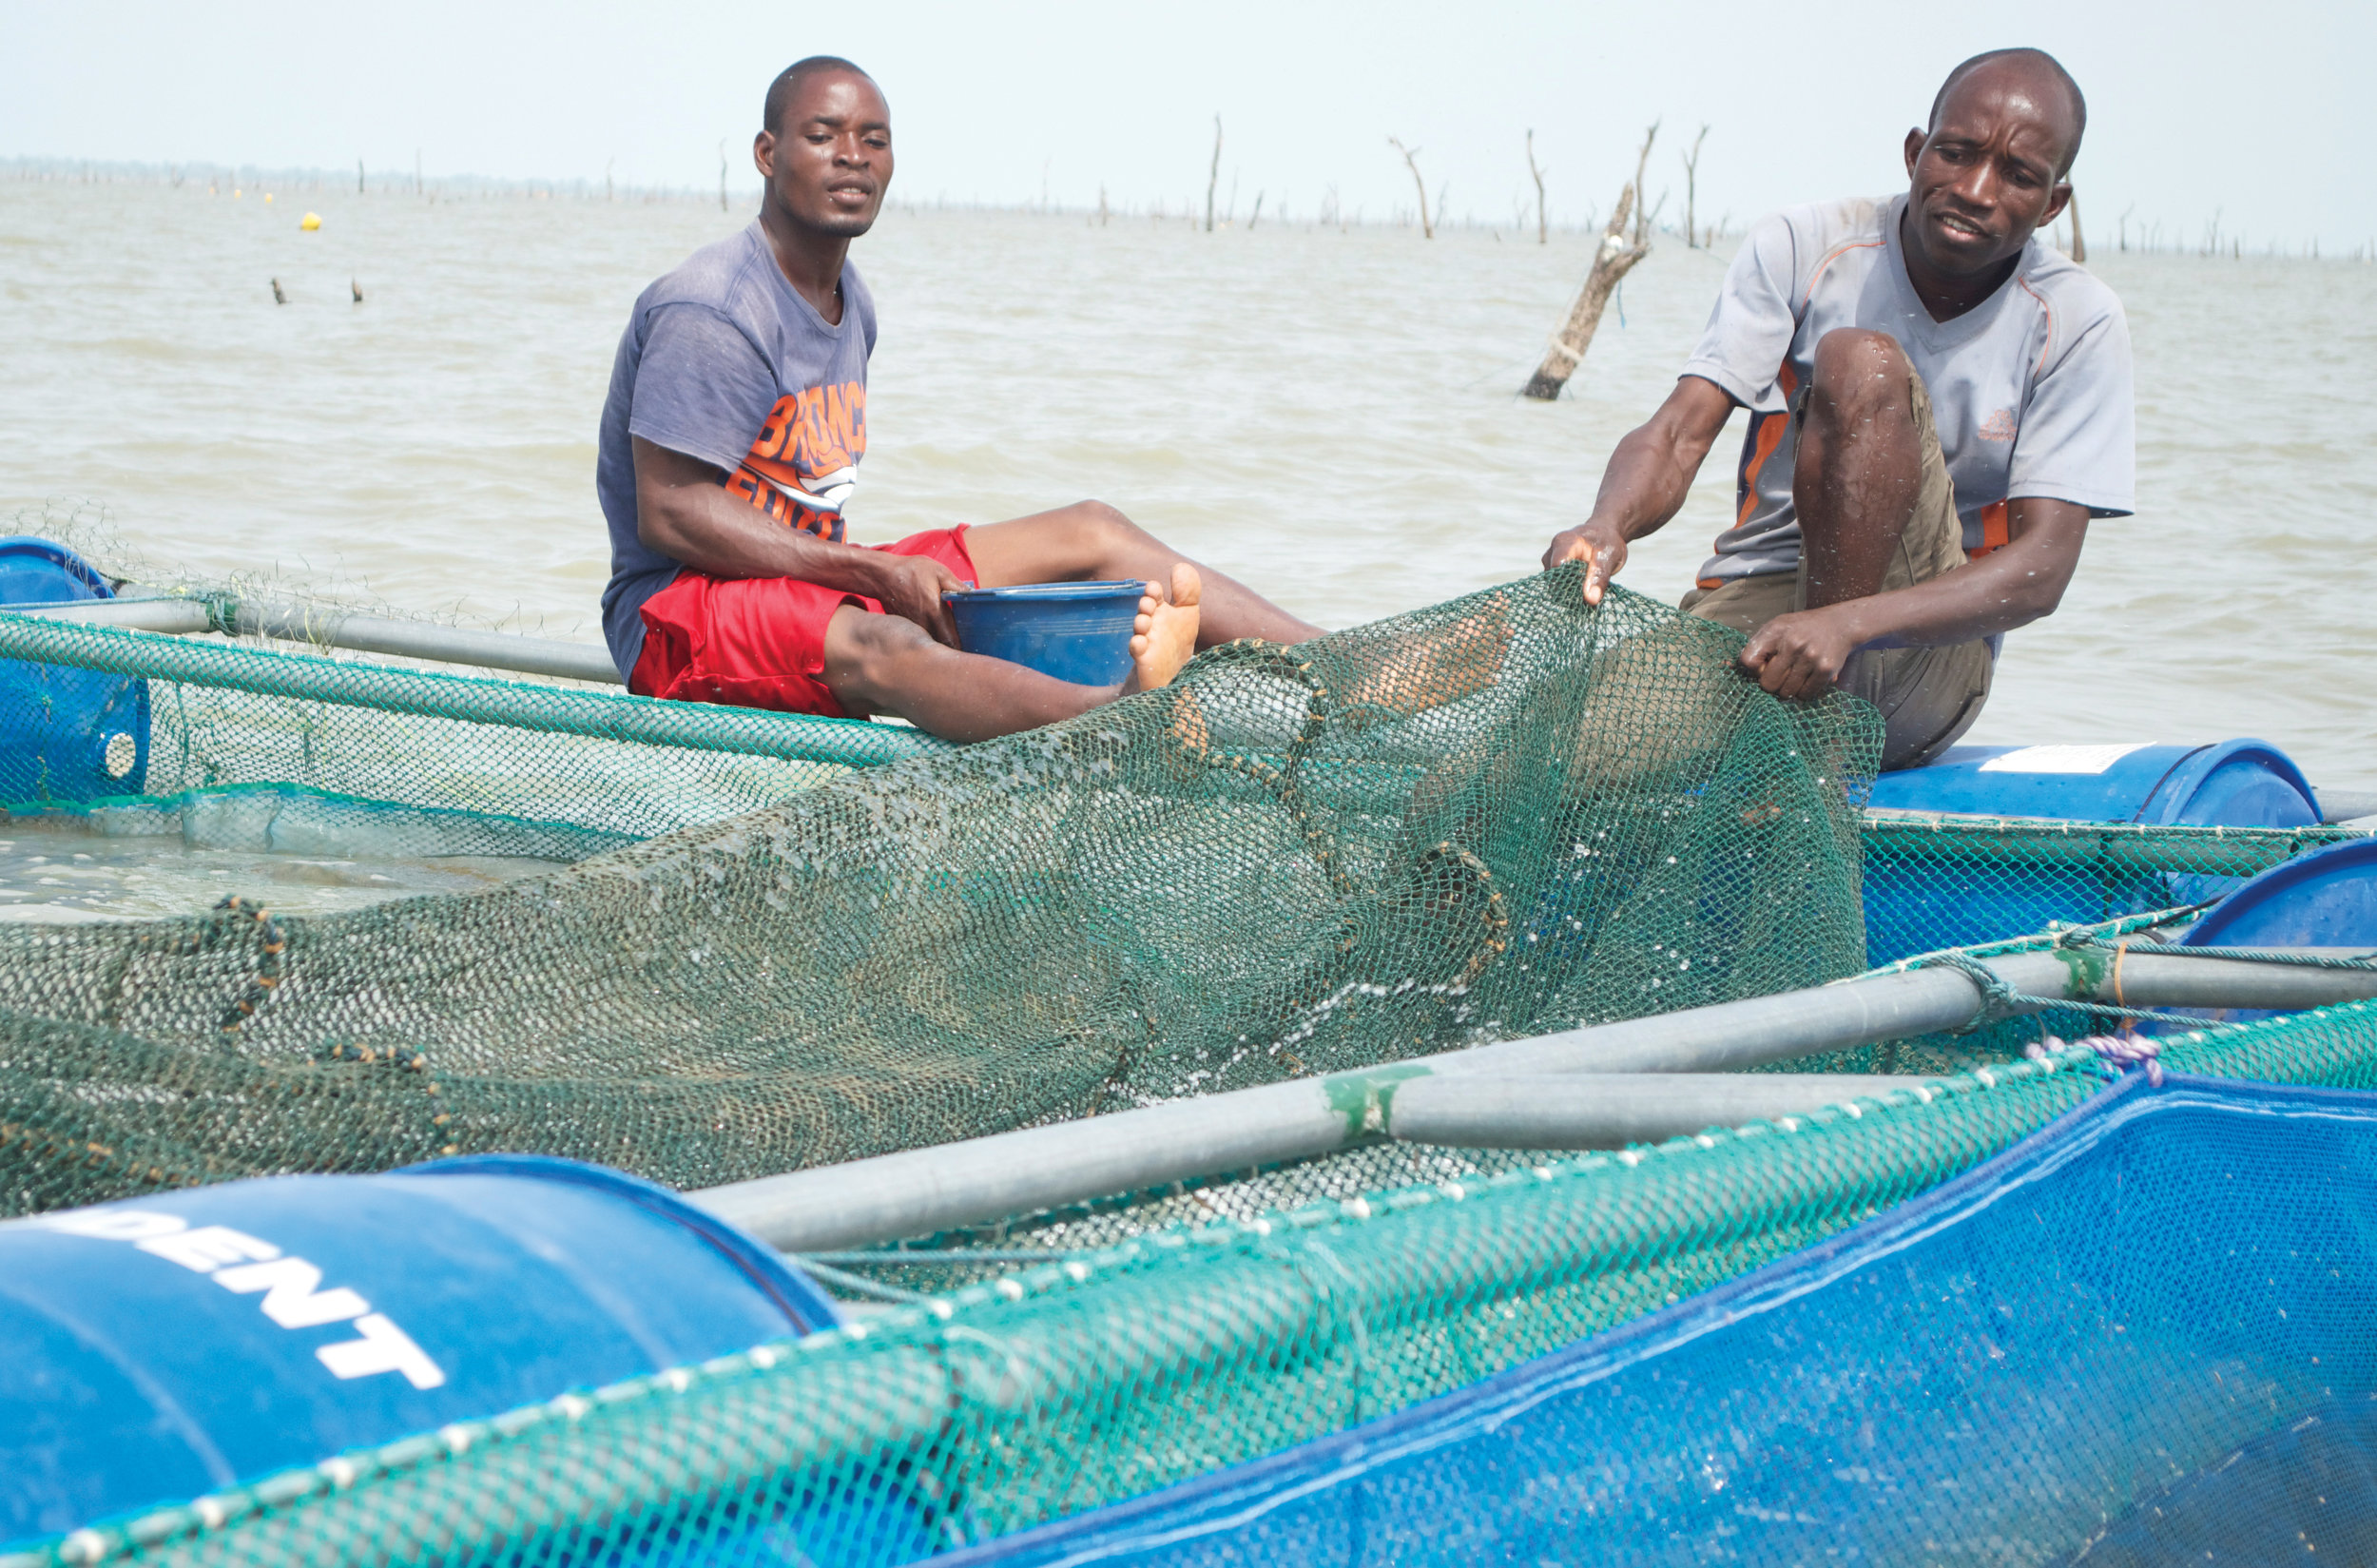 fishermen tending to the cages